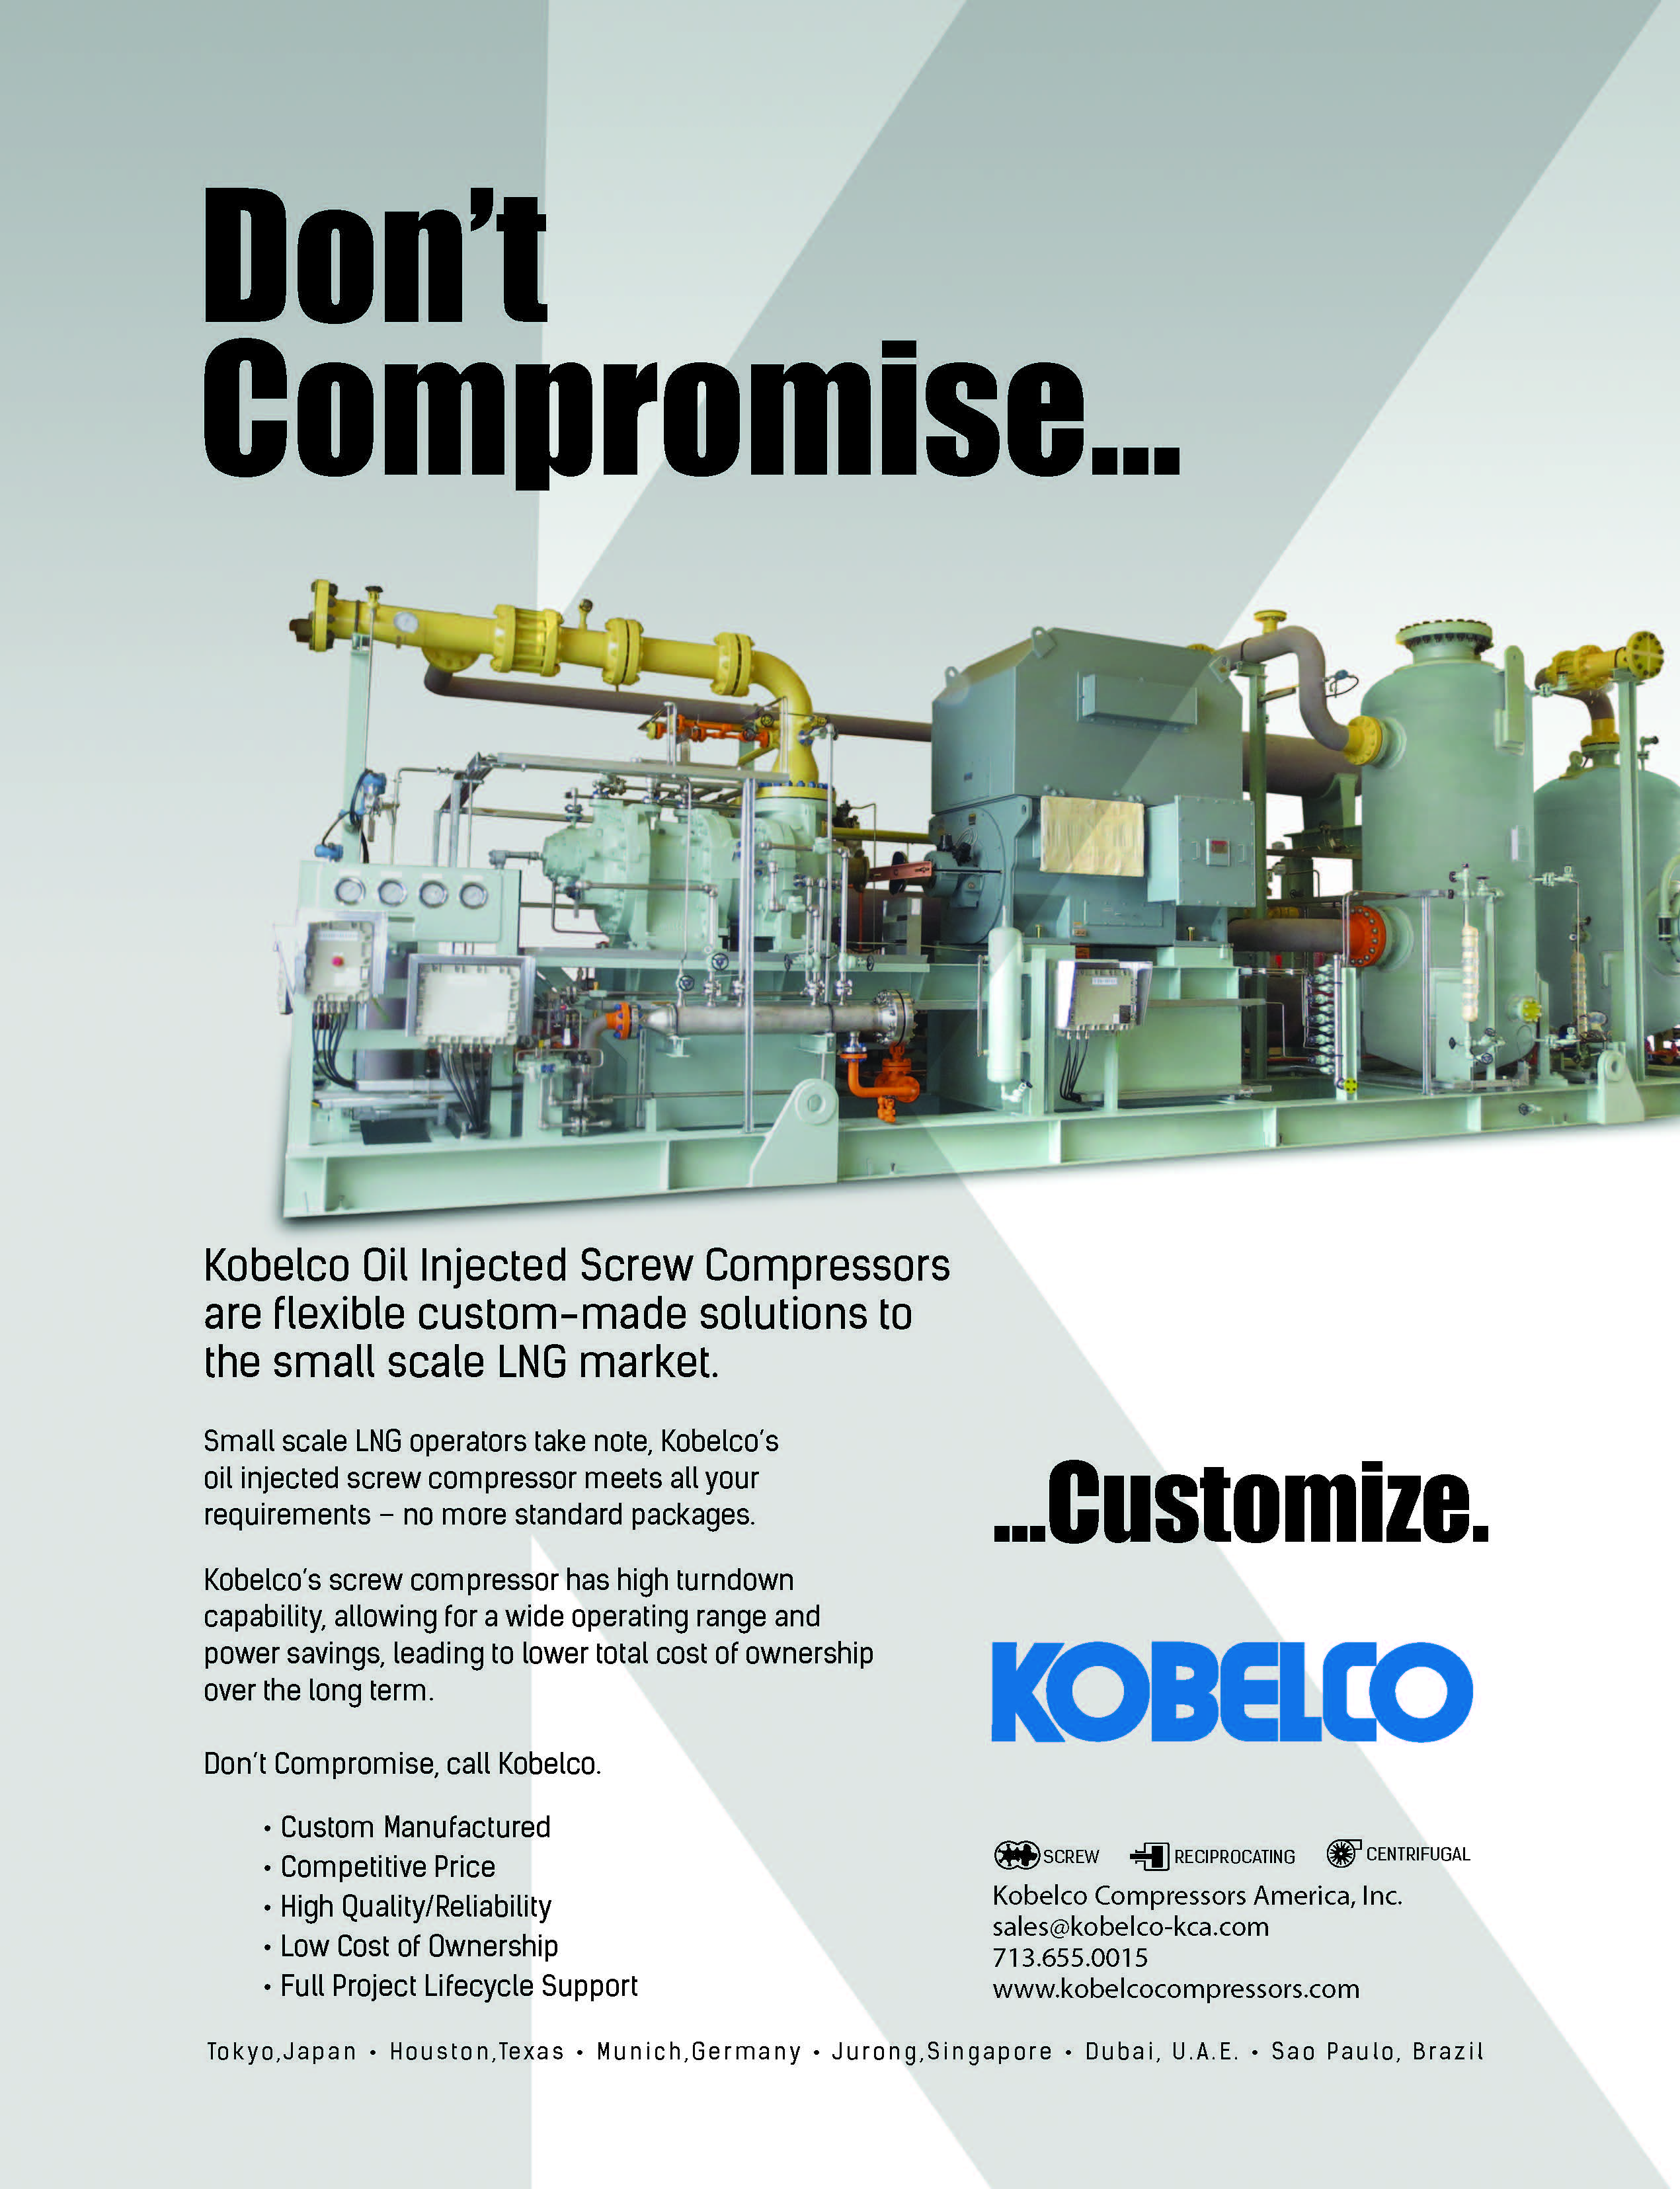 Kobelco- Flare Gas RecoveryRight Compressor-Right Company Build Your